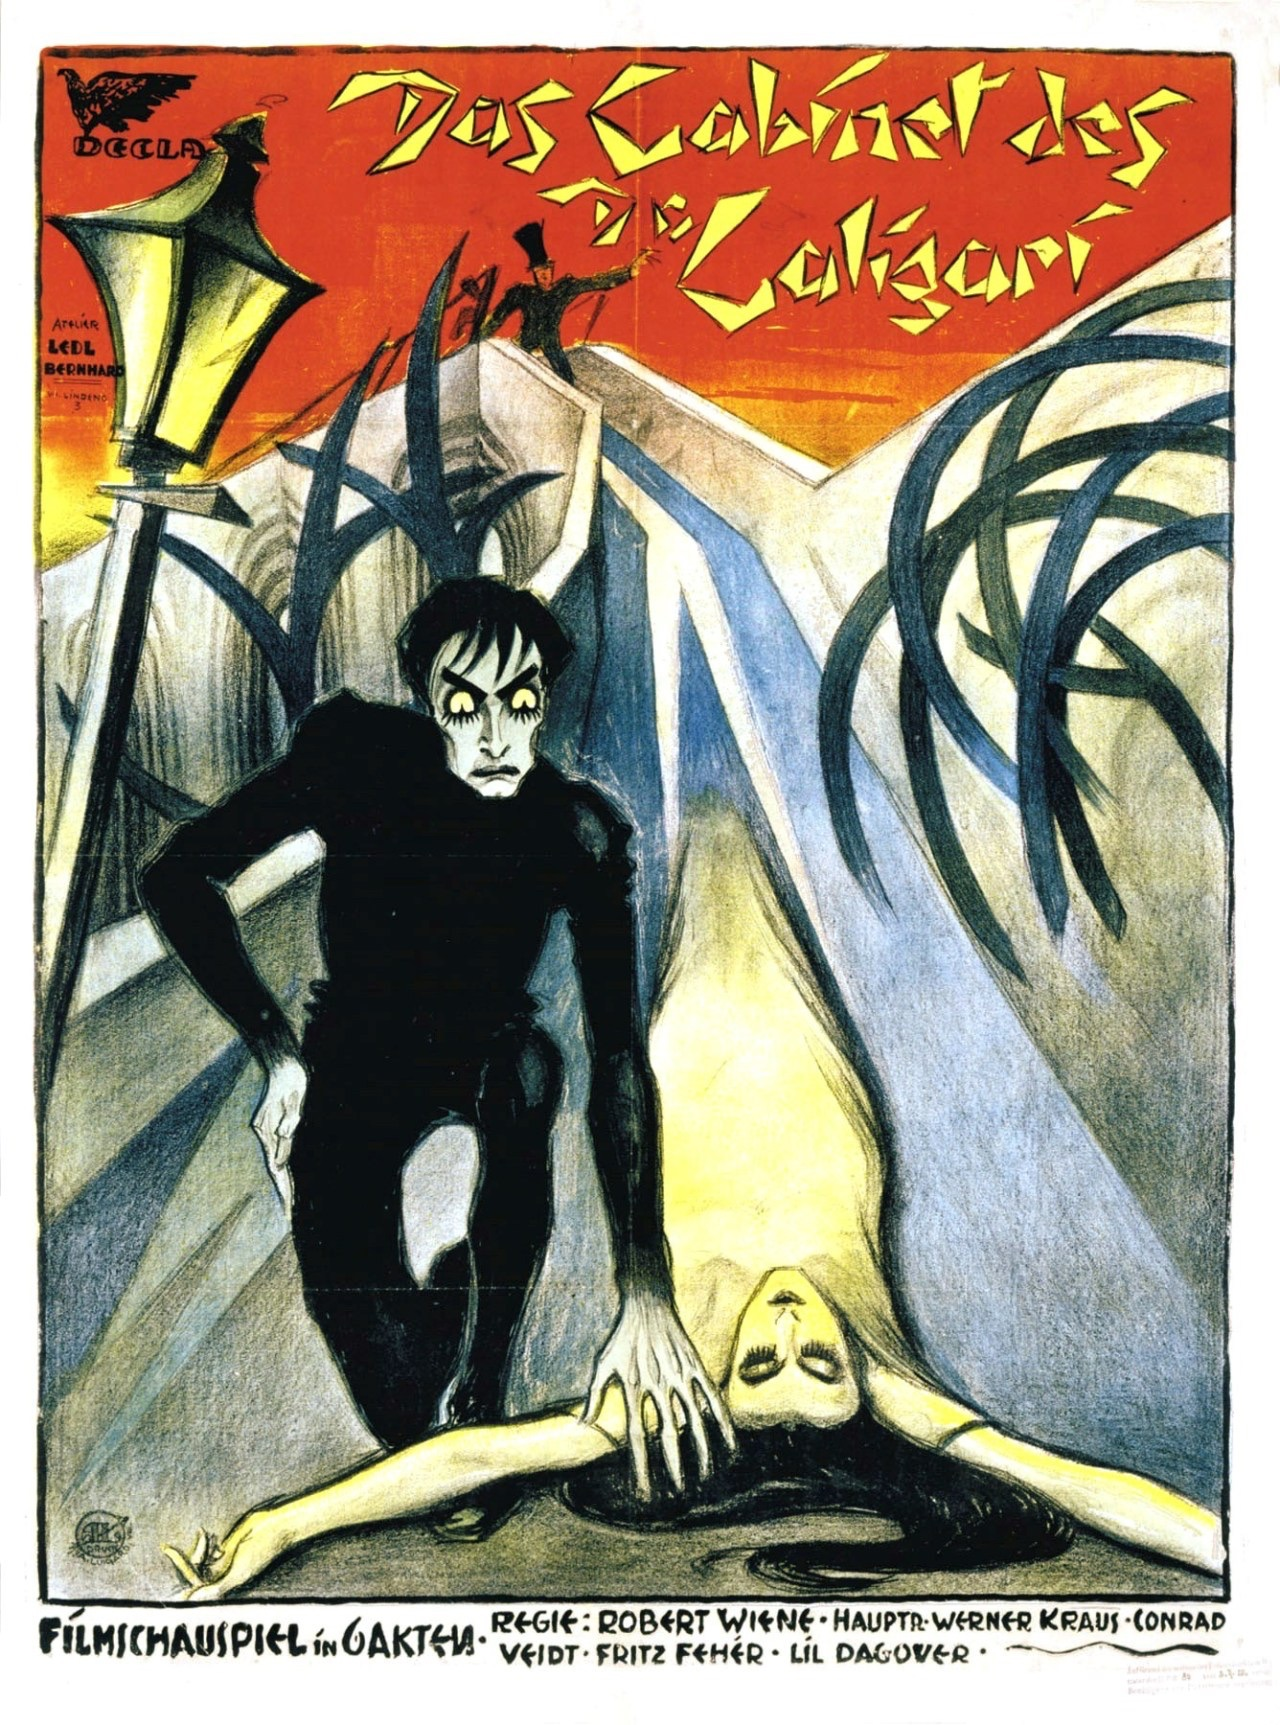 Relax, it's not the virus. 'The Cabinet of Dr. Caligari,' a classic shock film from 1920, is one of numerous good movies Pittsburghers can watch free online. (image: original movie poster)